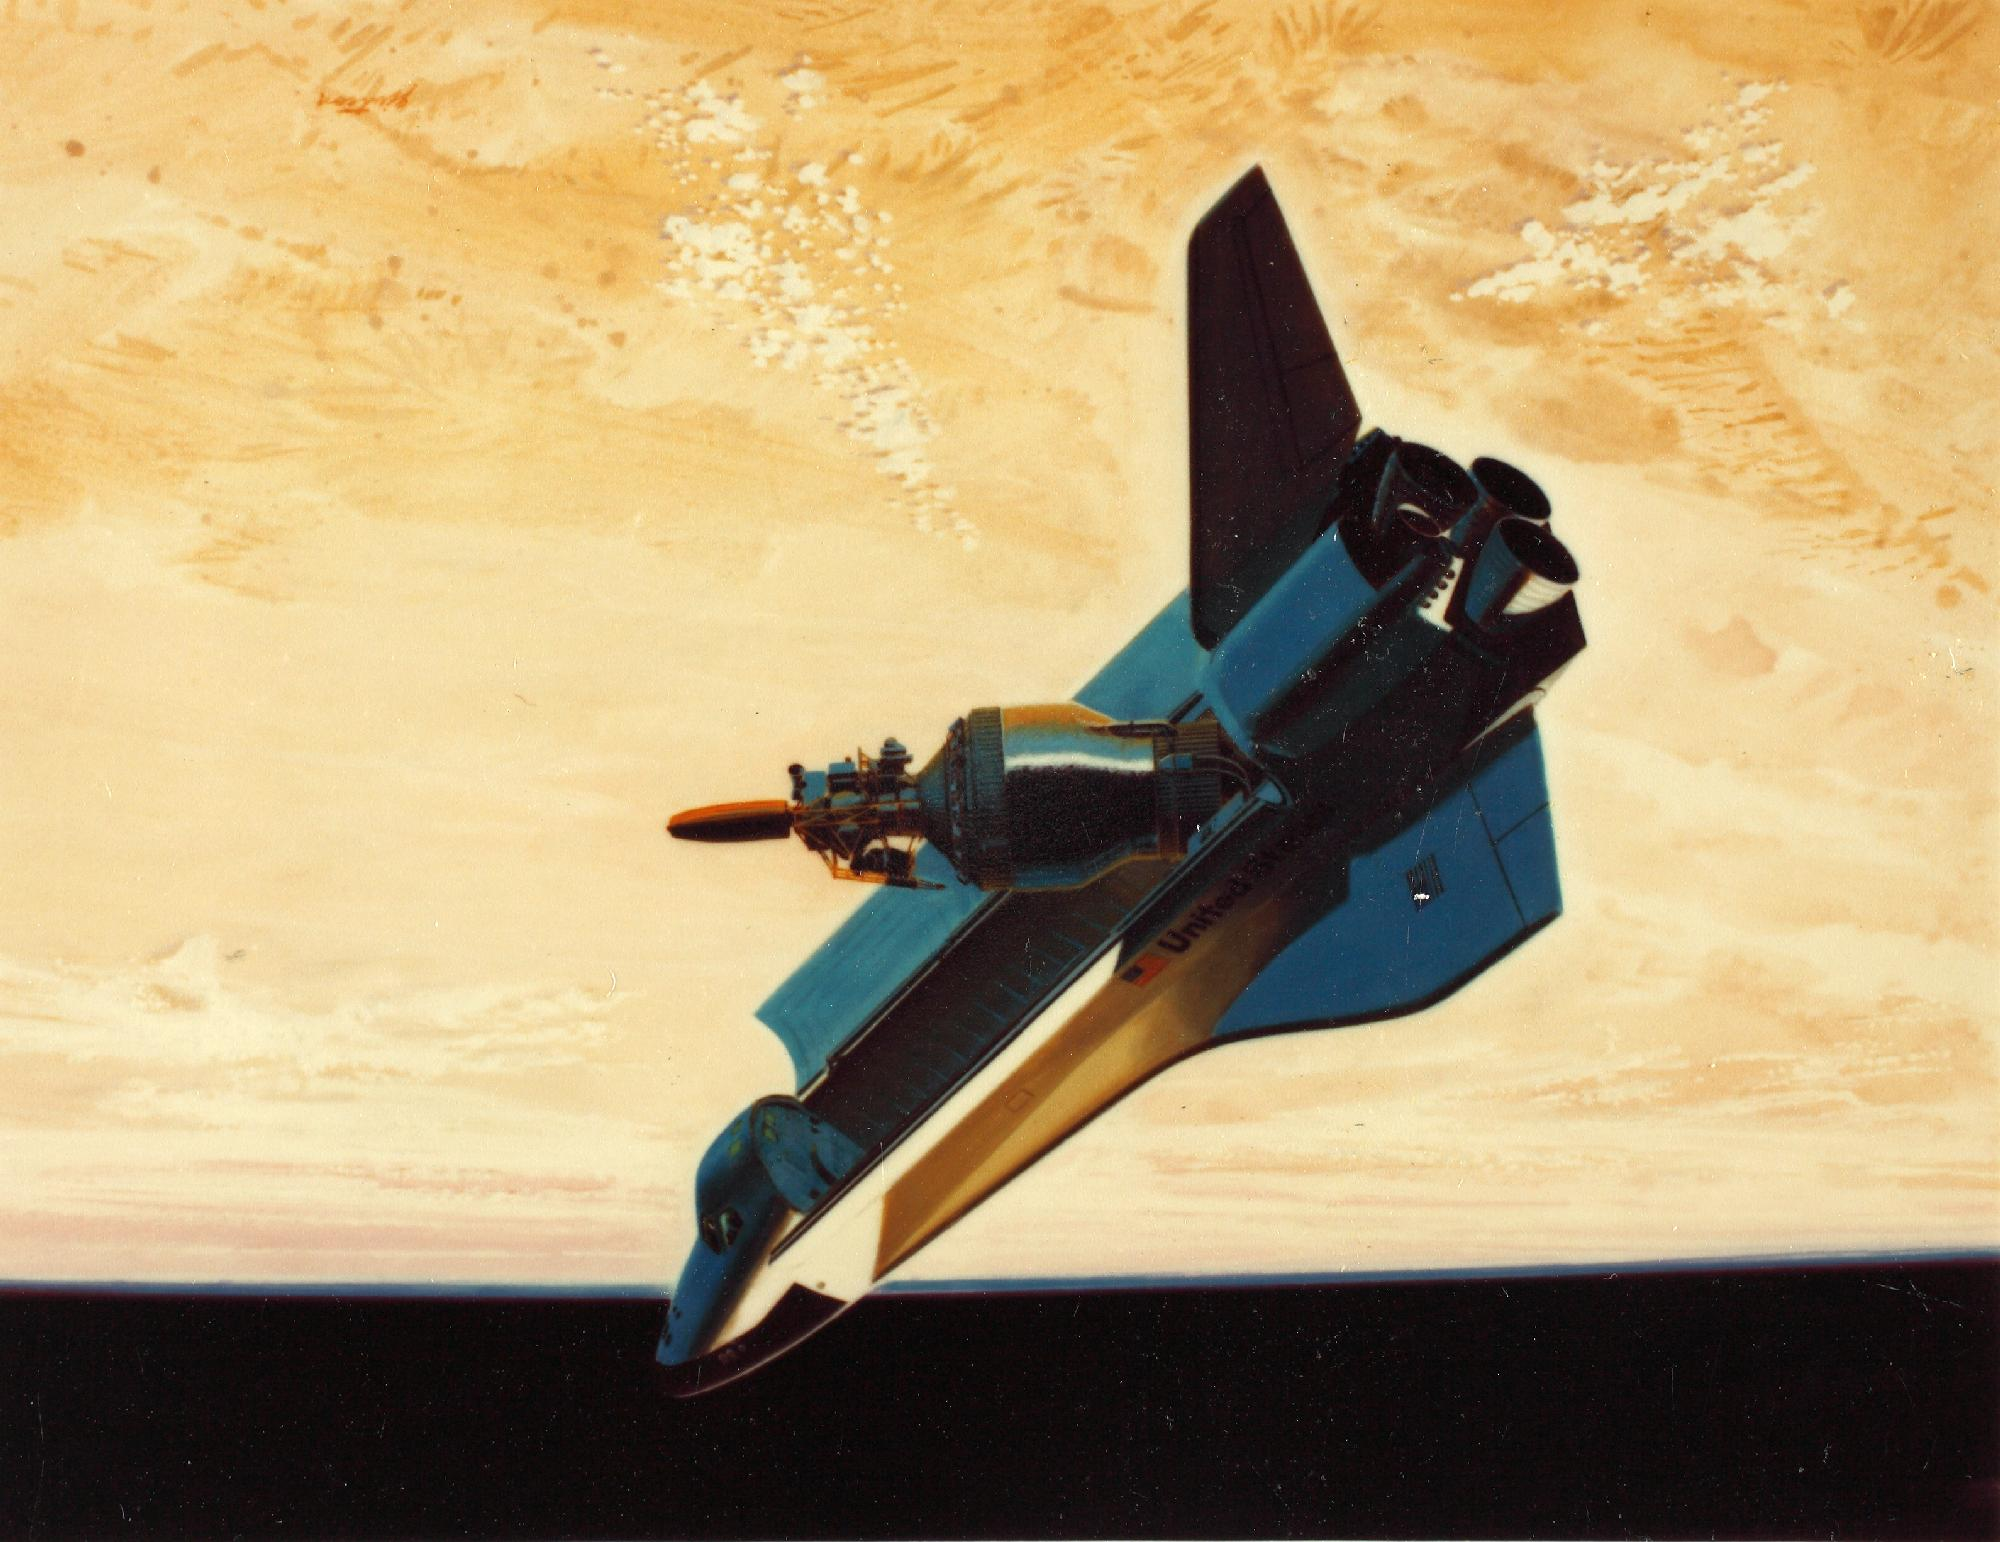 General Dynamics' artistic rendering of Shuttle-Centaur, with optimistic text about a 1986 target date for launch.